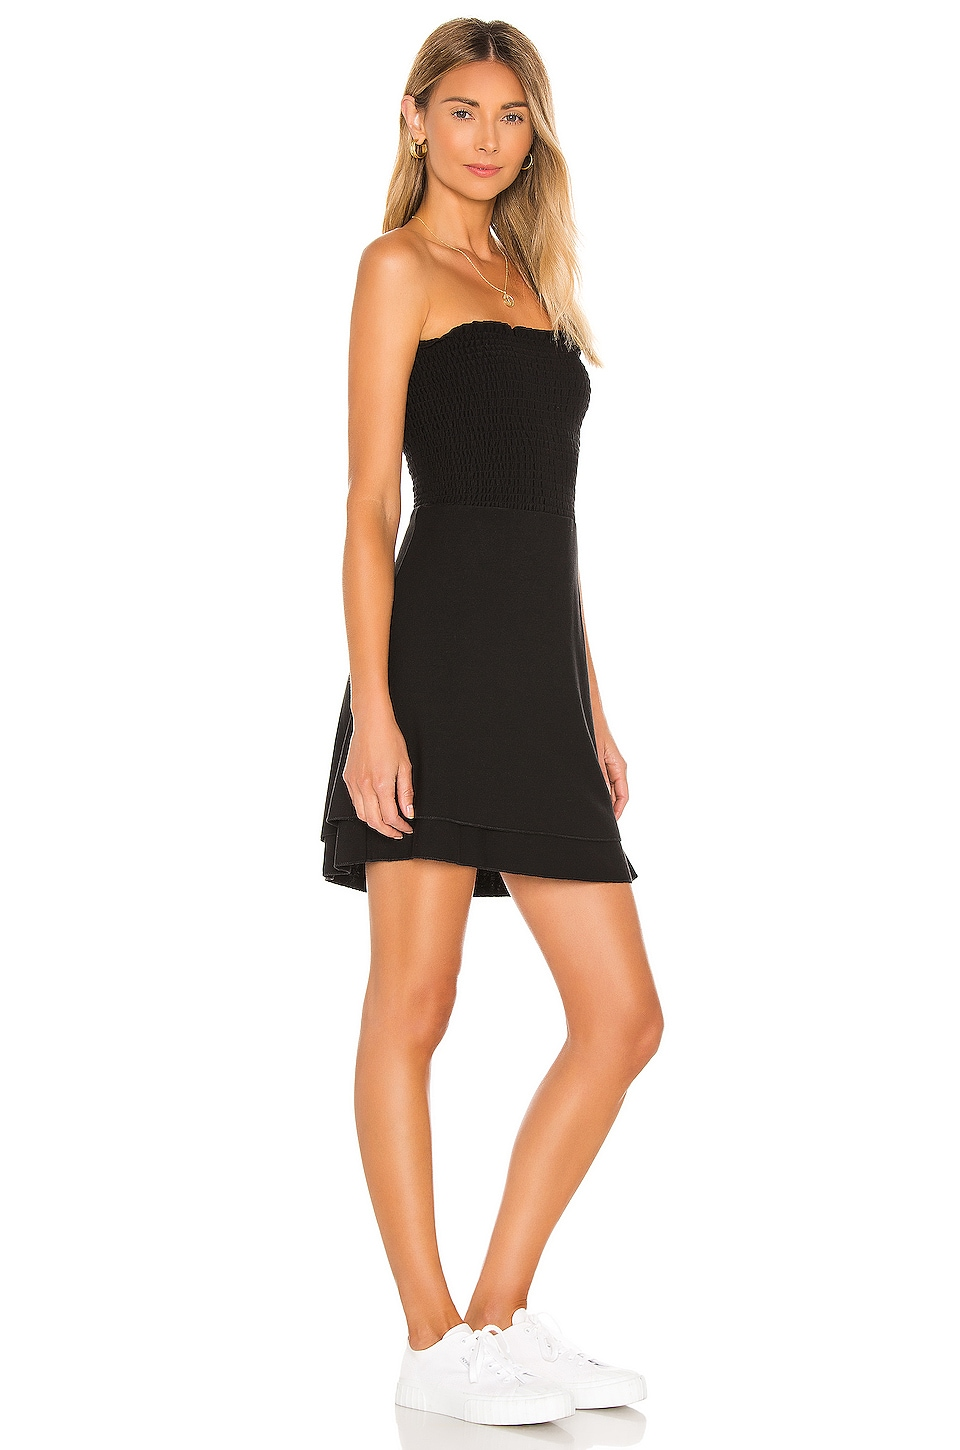 Cozy Knit Strapless Smocked Mini Dress, view 2, click to view large image.